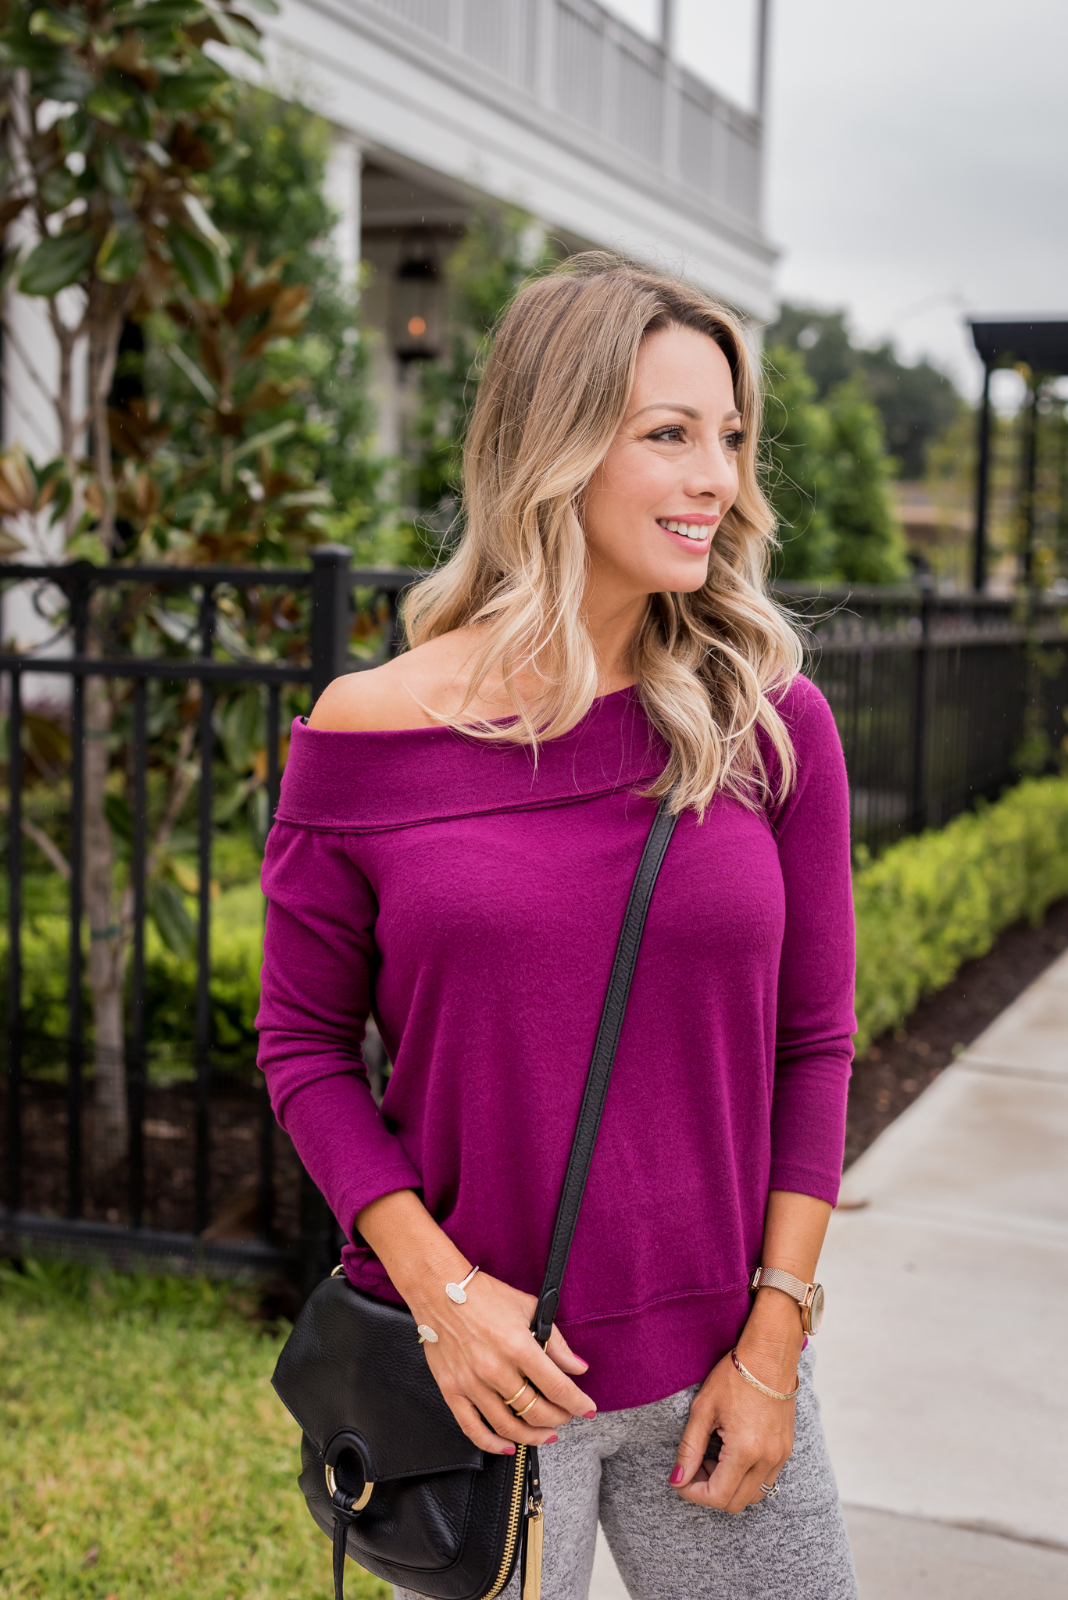 Cozy Fall Outfit Inspiration -Gibson joggers and off shoulder top (3)